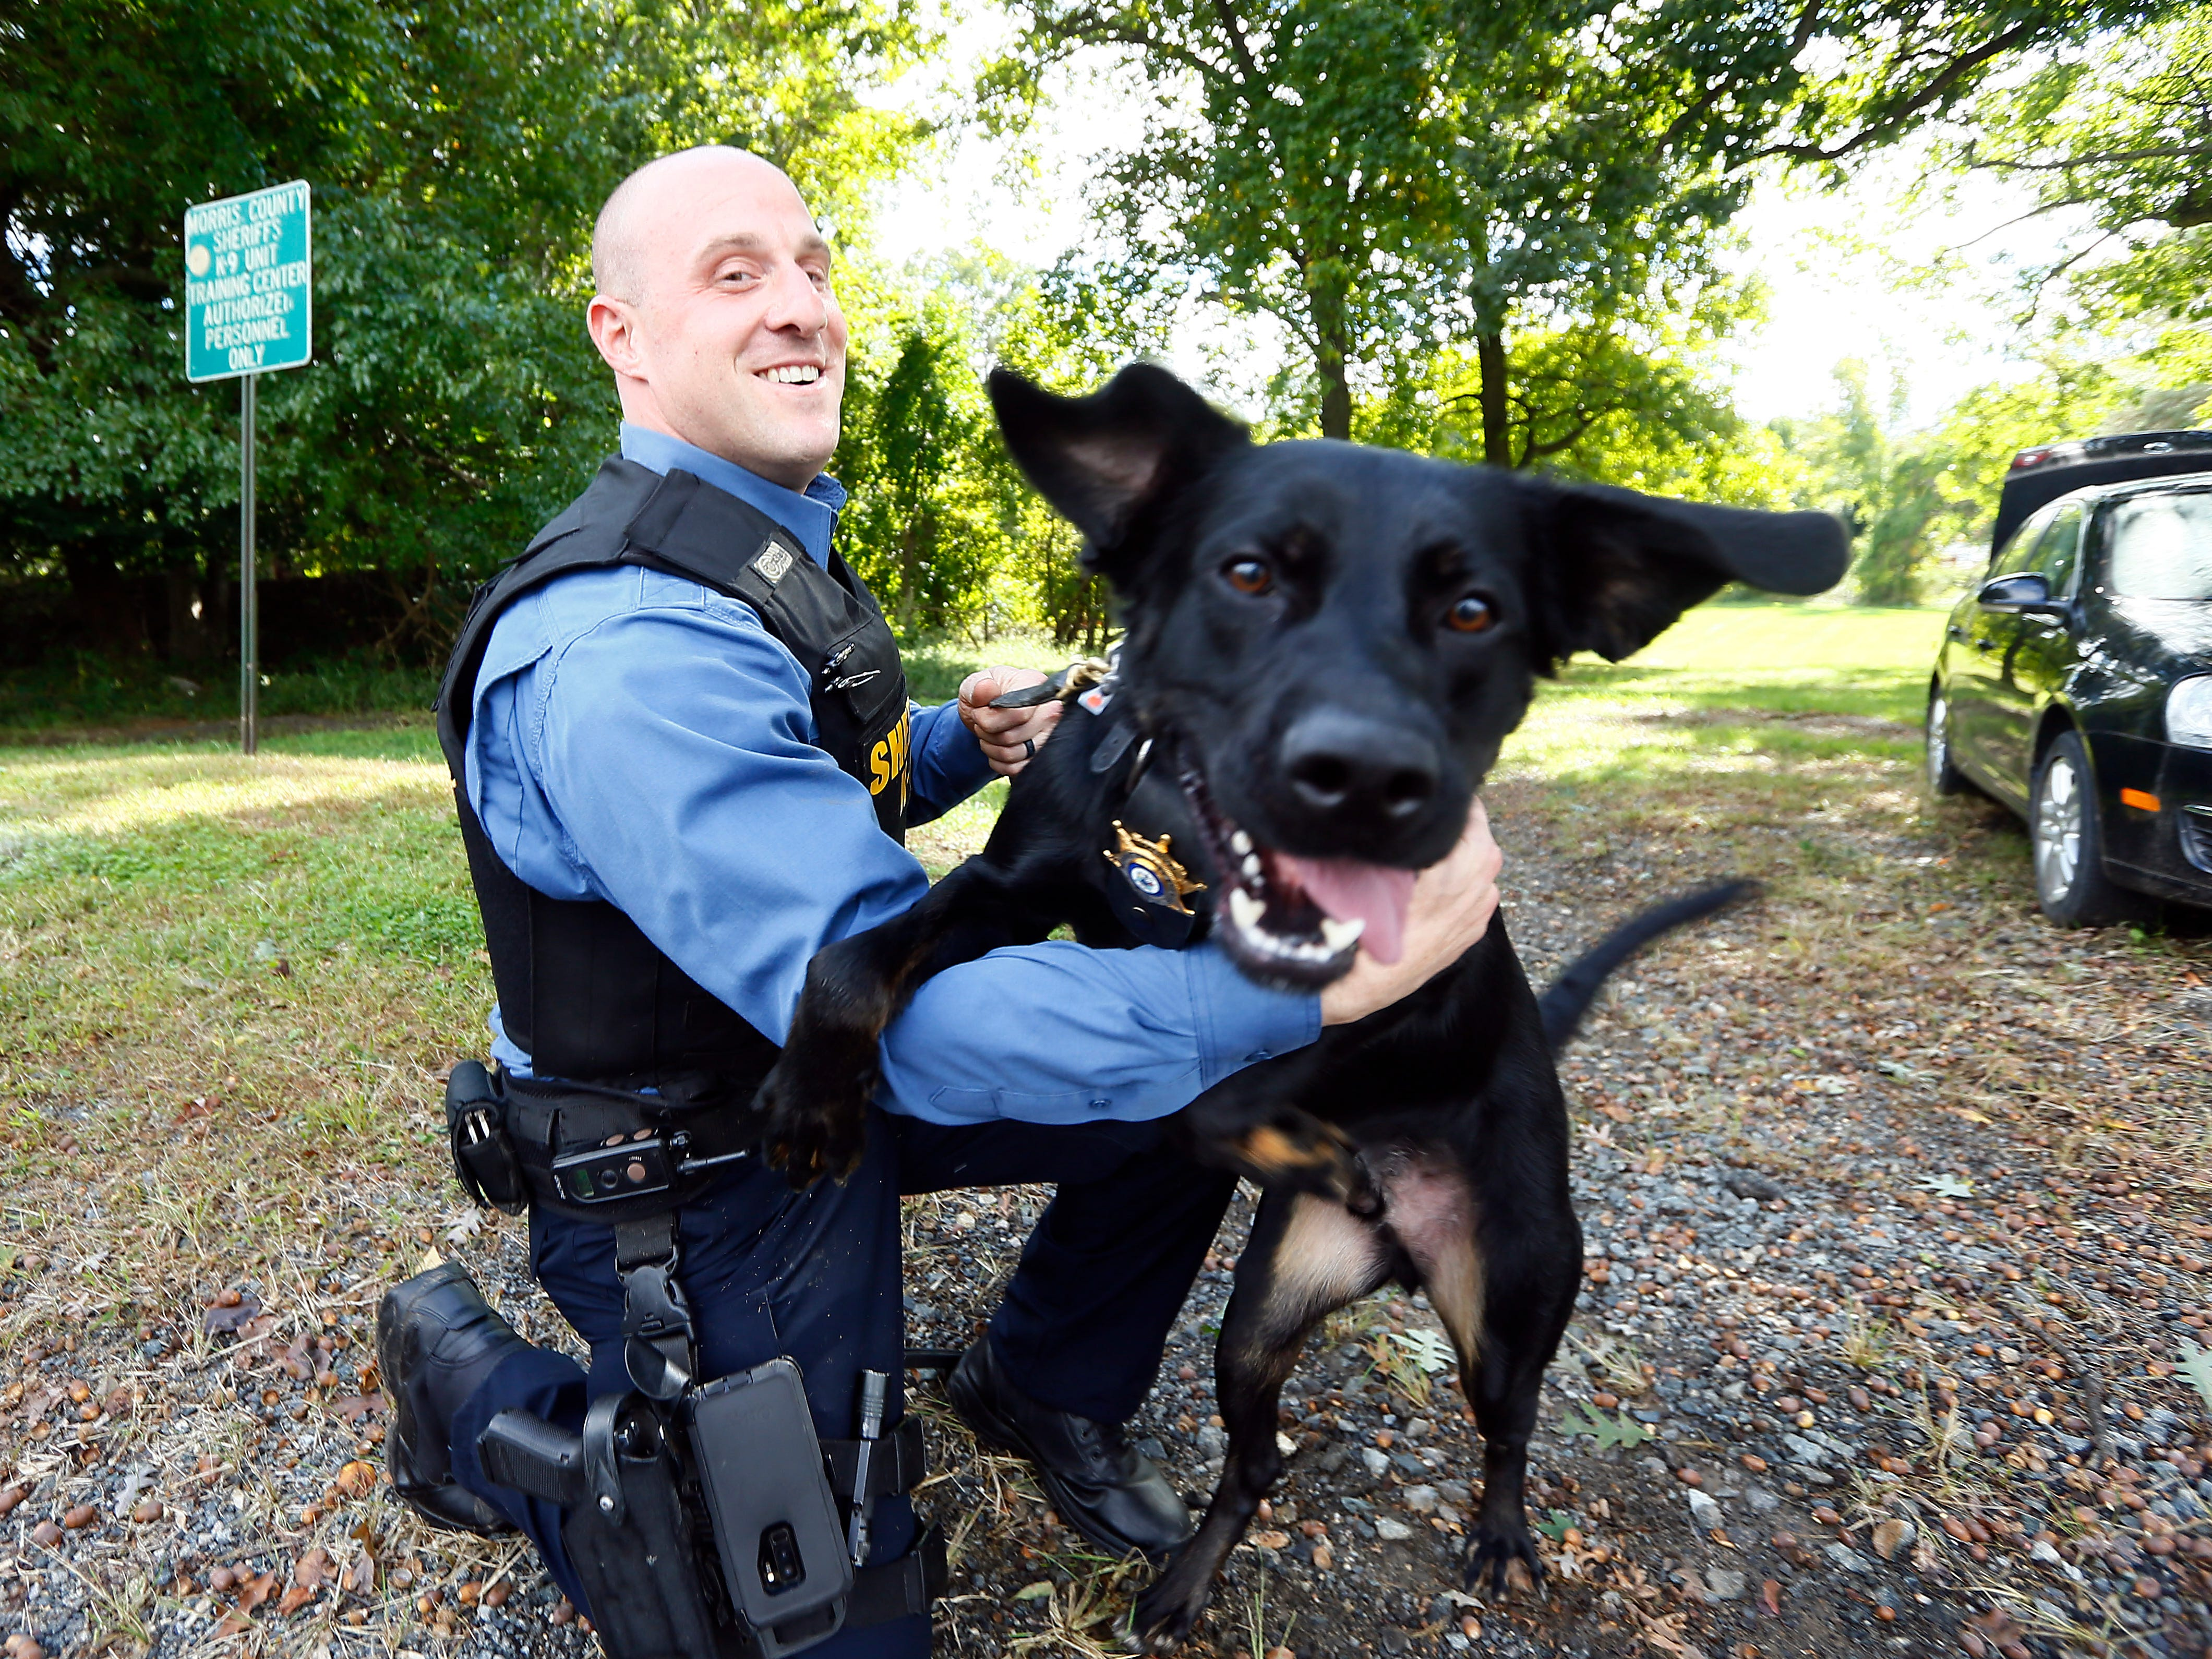 K-9 Boomer at the Morris County sheriff's office K-9 kennels in Parsippany. Boomer was found at a shelter, rescued and then trained as the sheriff's office's newest bomb sniffing dog. October 3, 2018, Parsippany, NJ